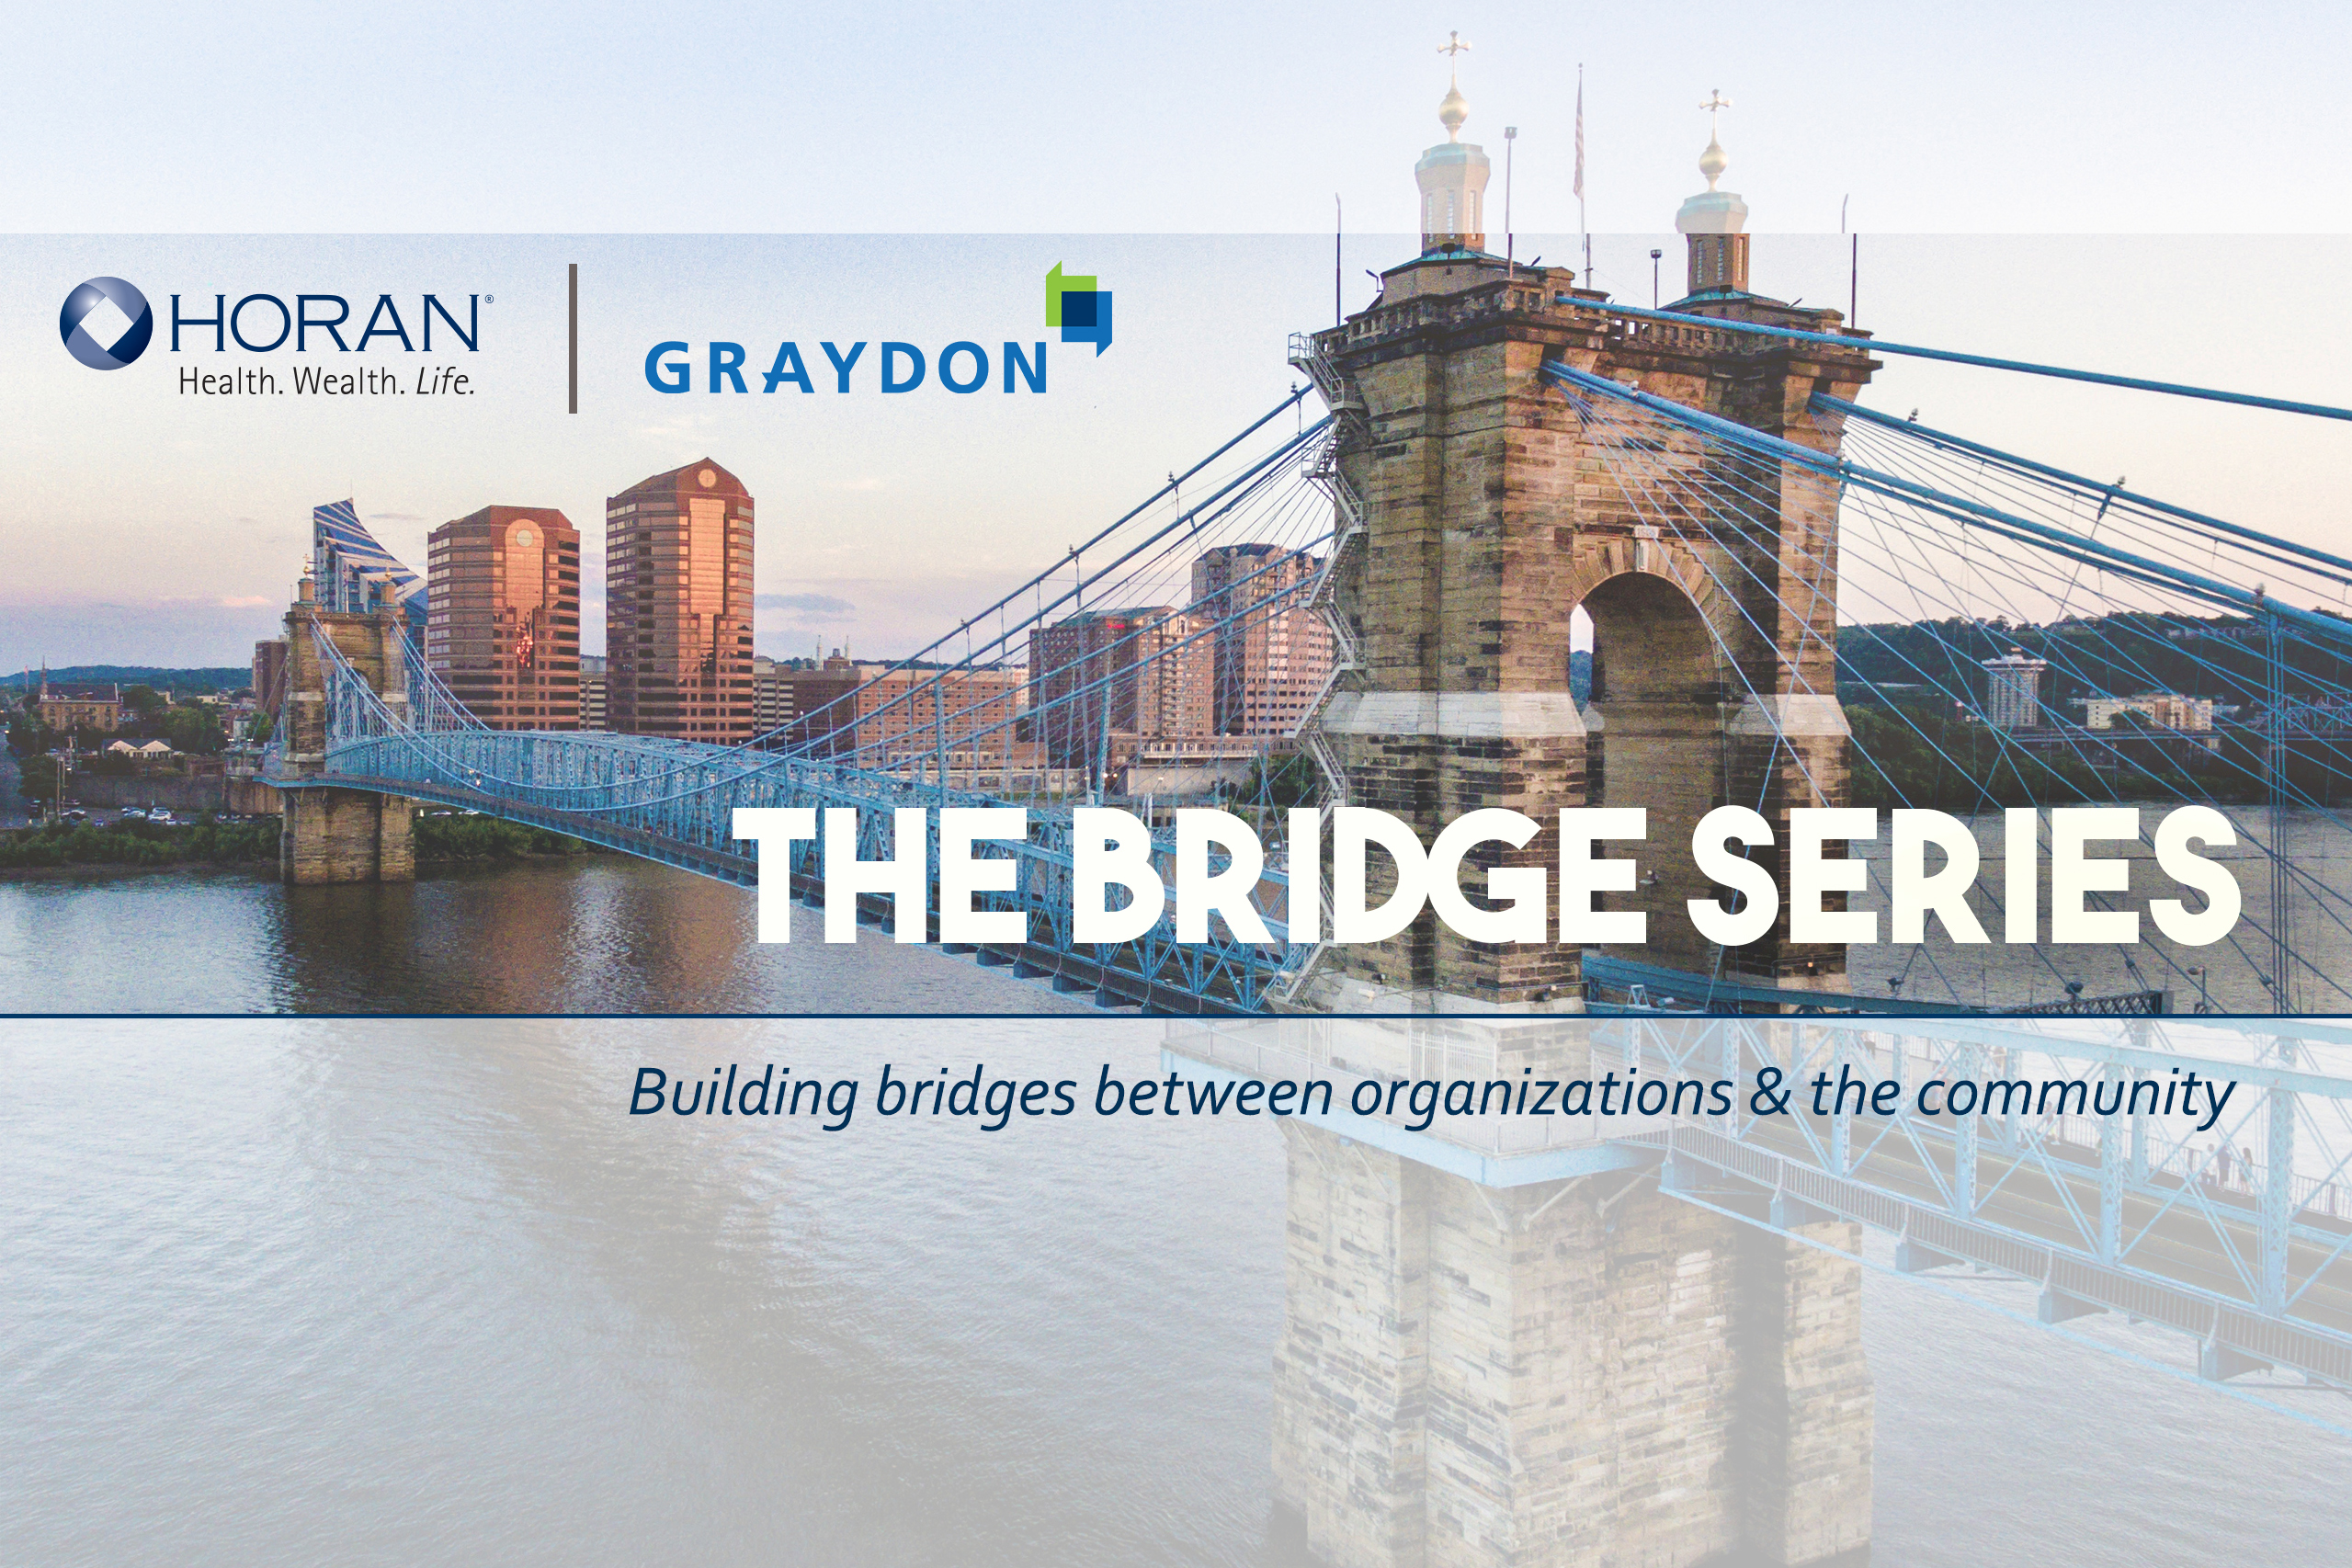 Bridge Series Graydon Horan